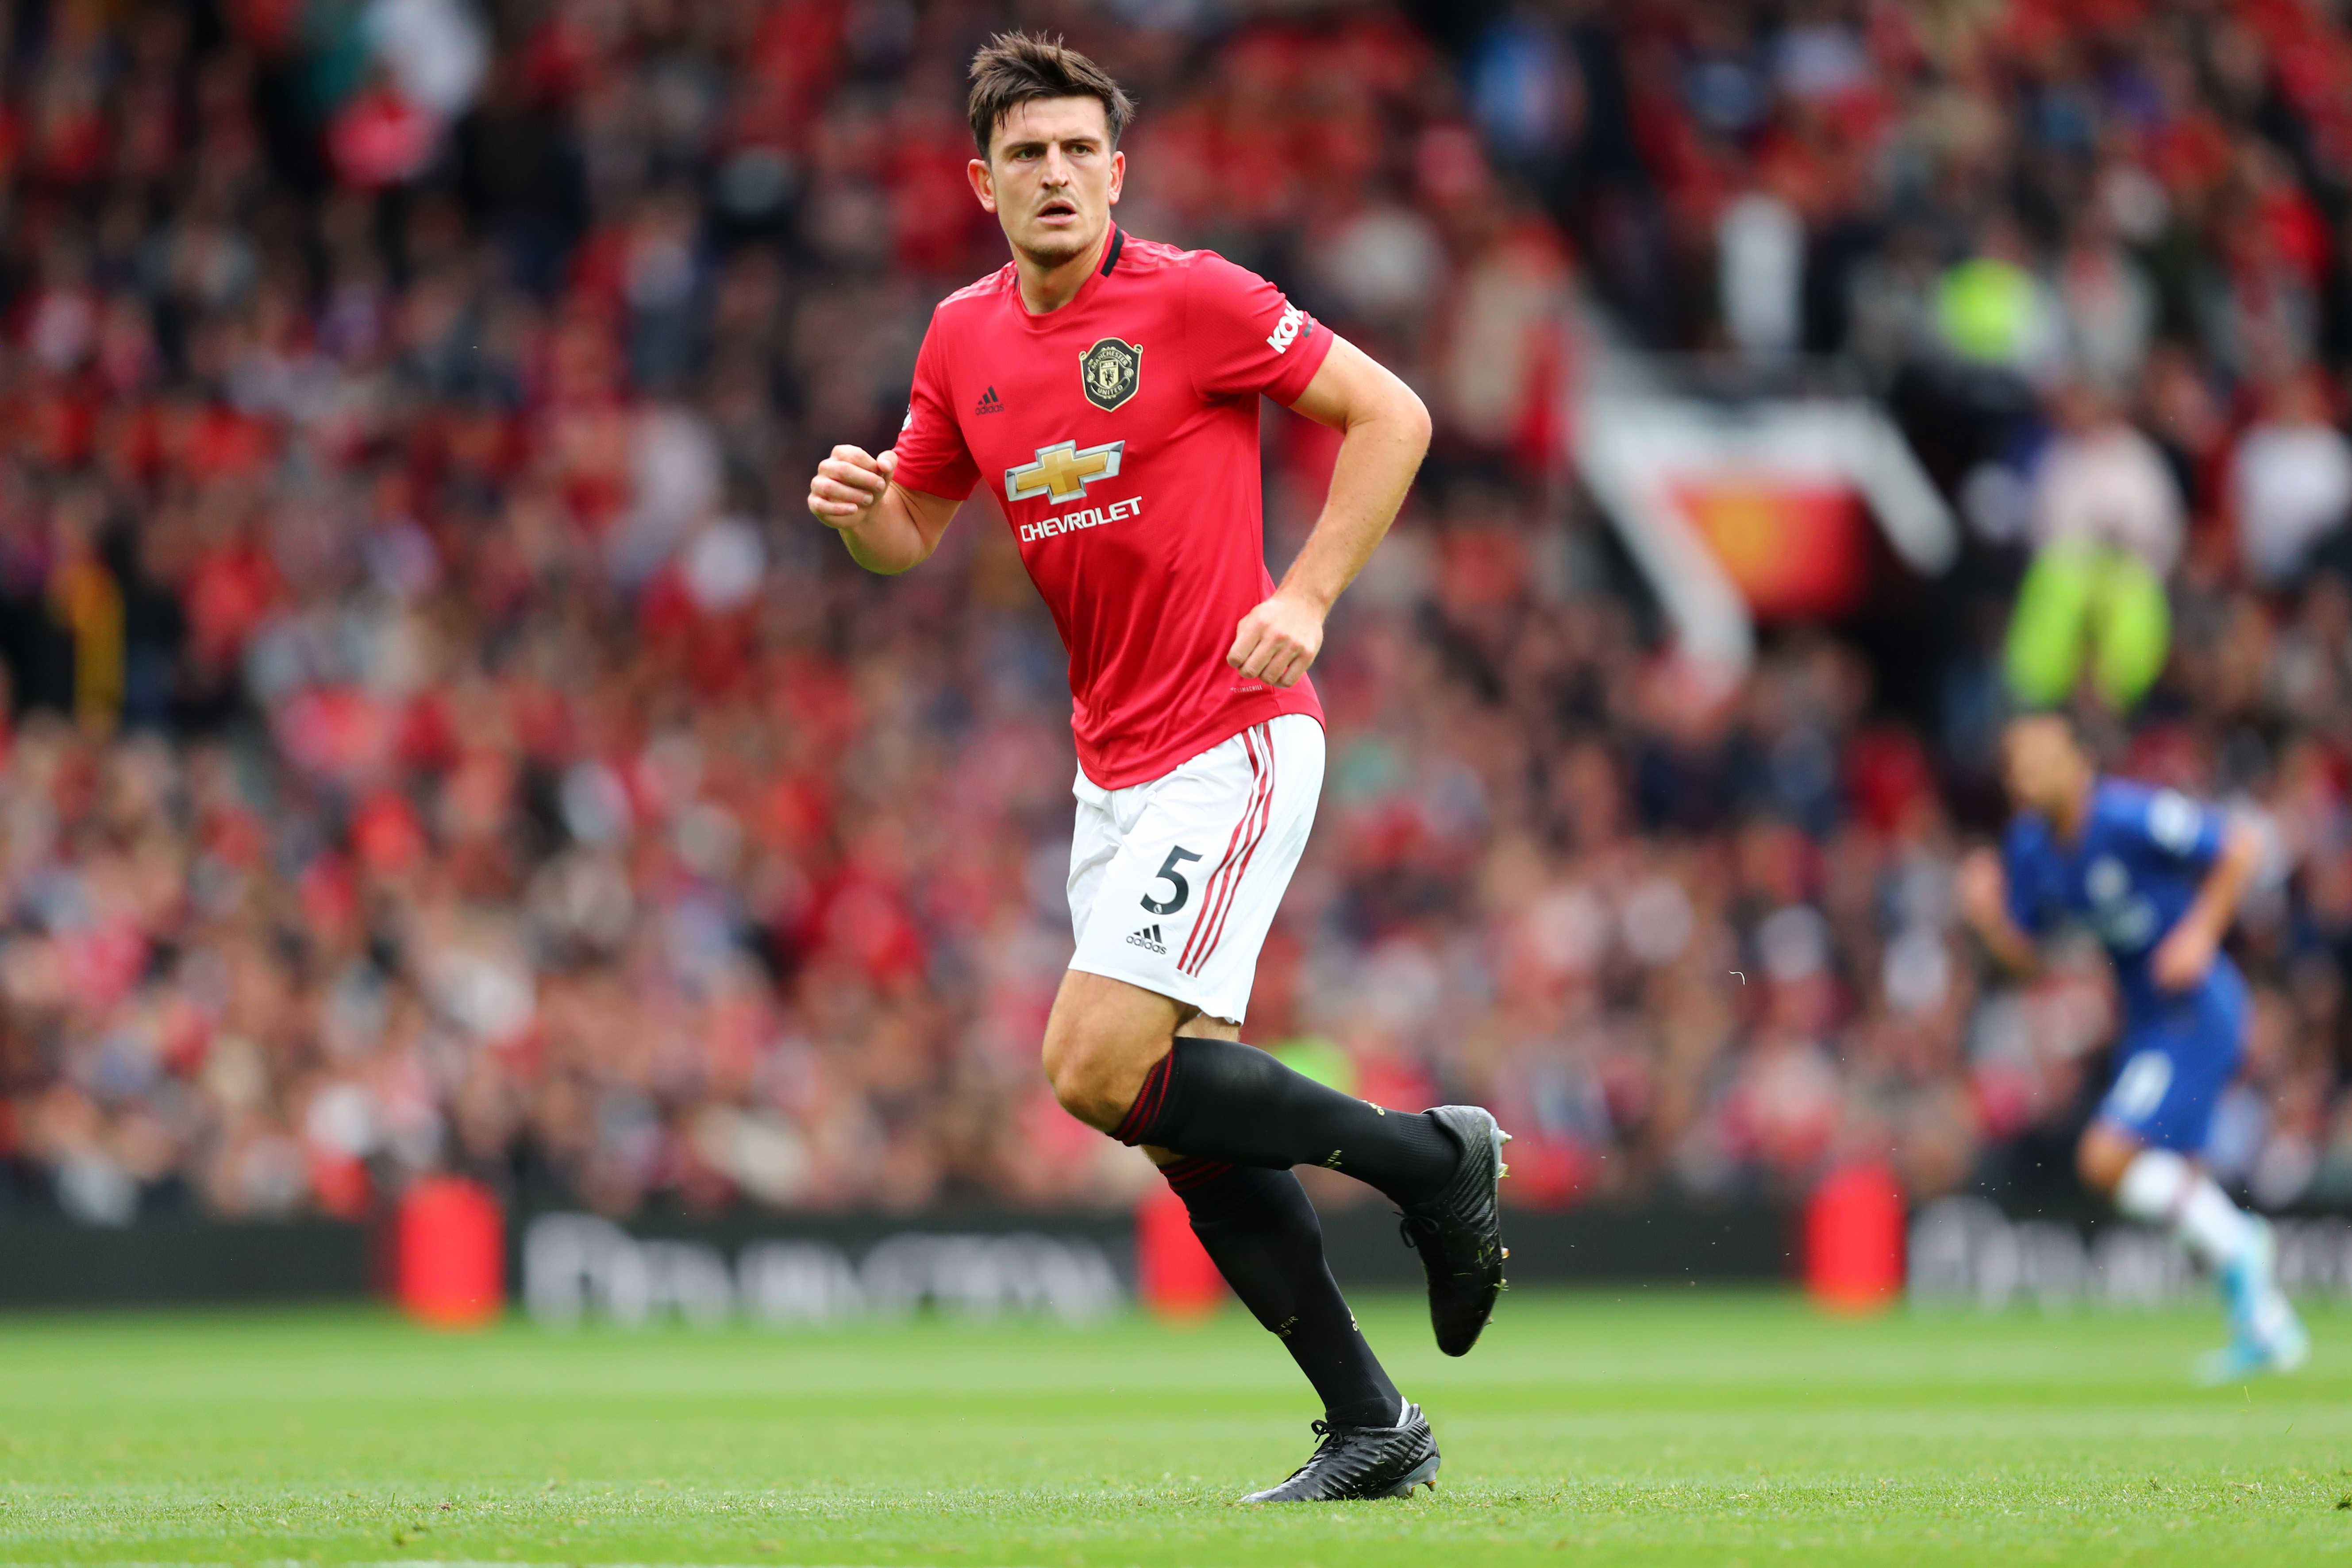 Harry Maguire - Manchester United - 2019/2020